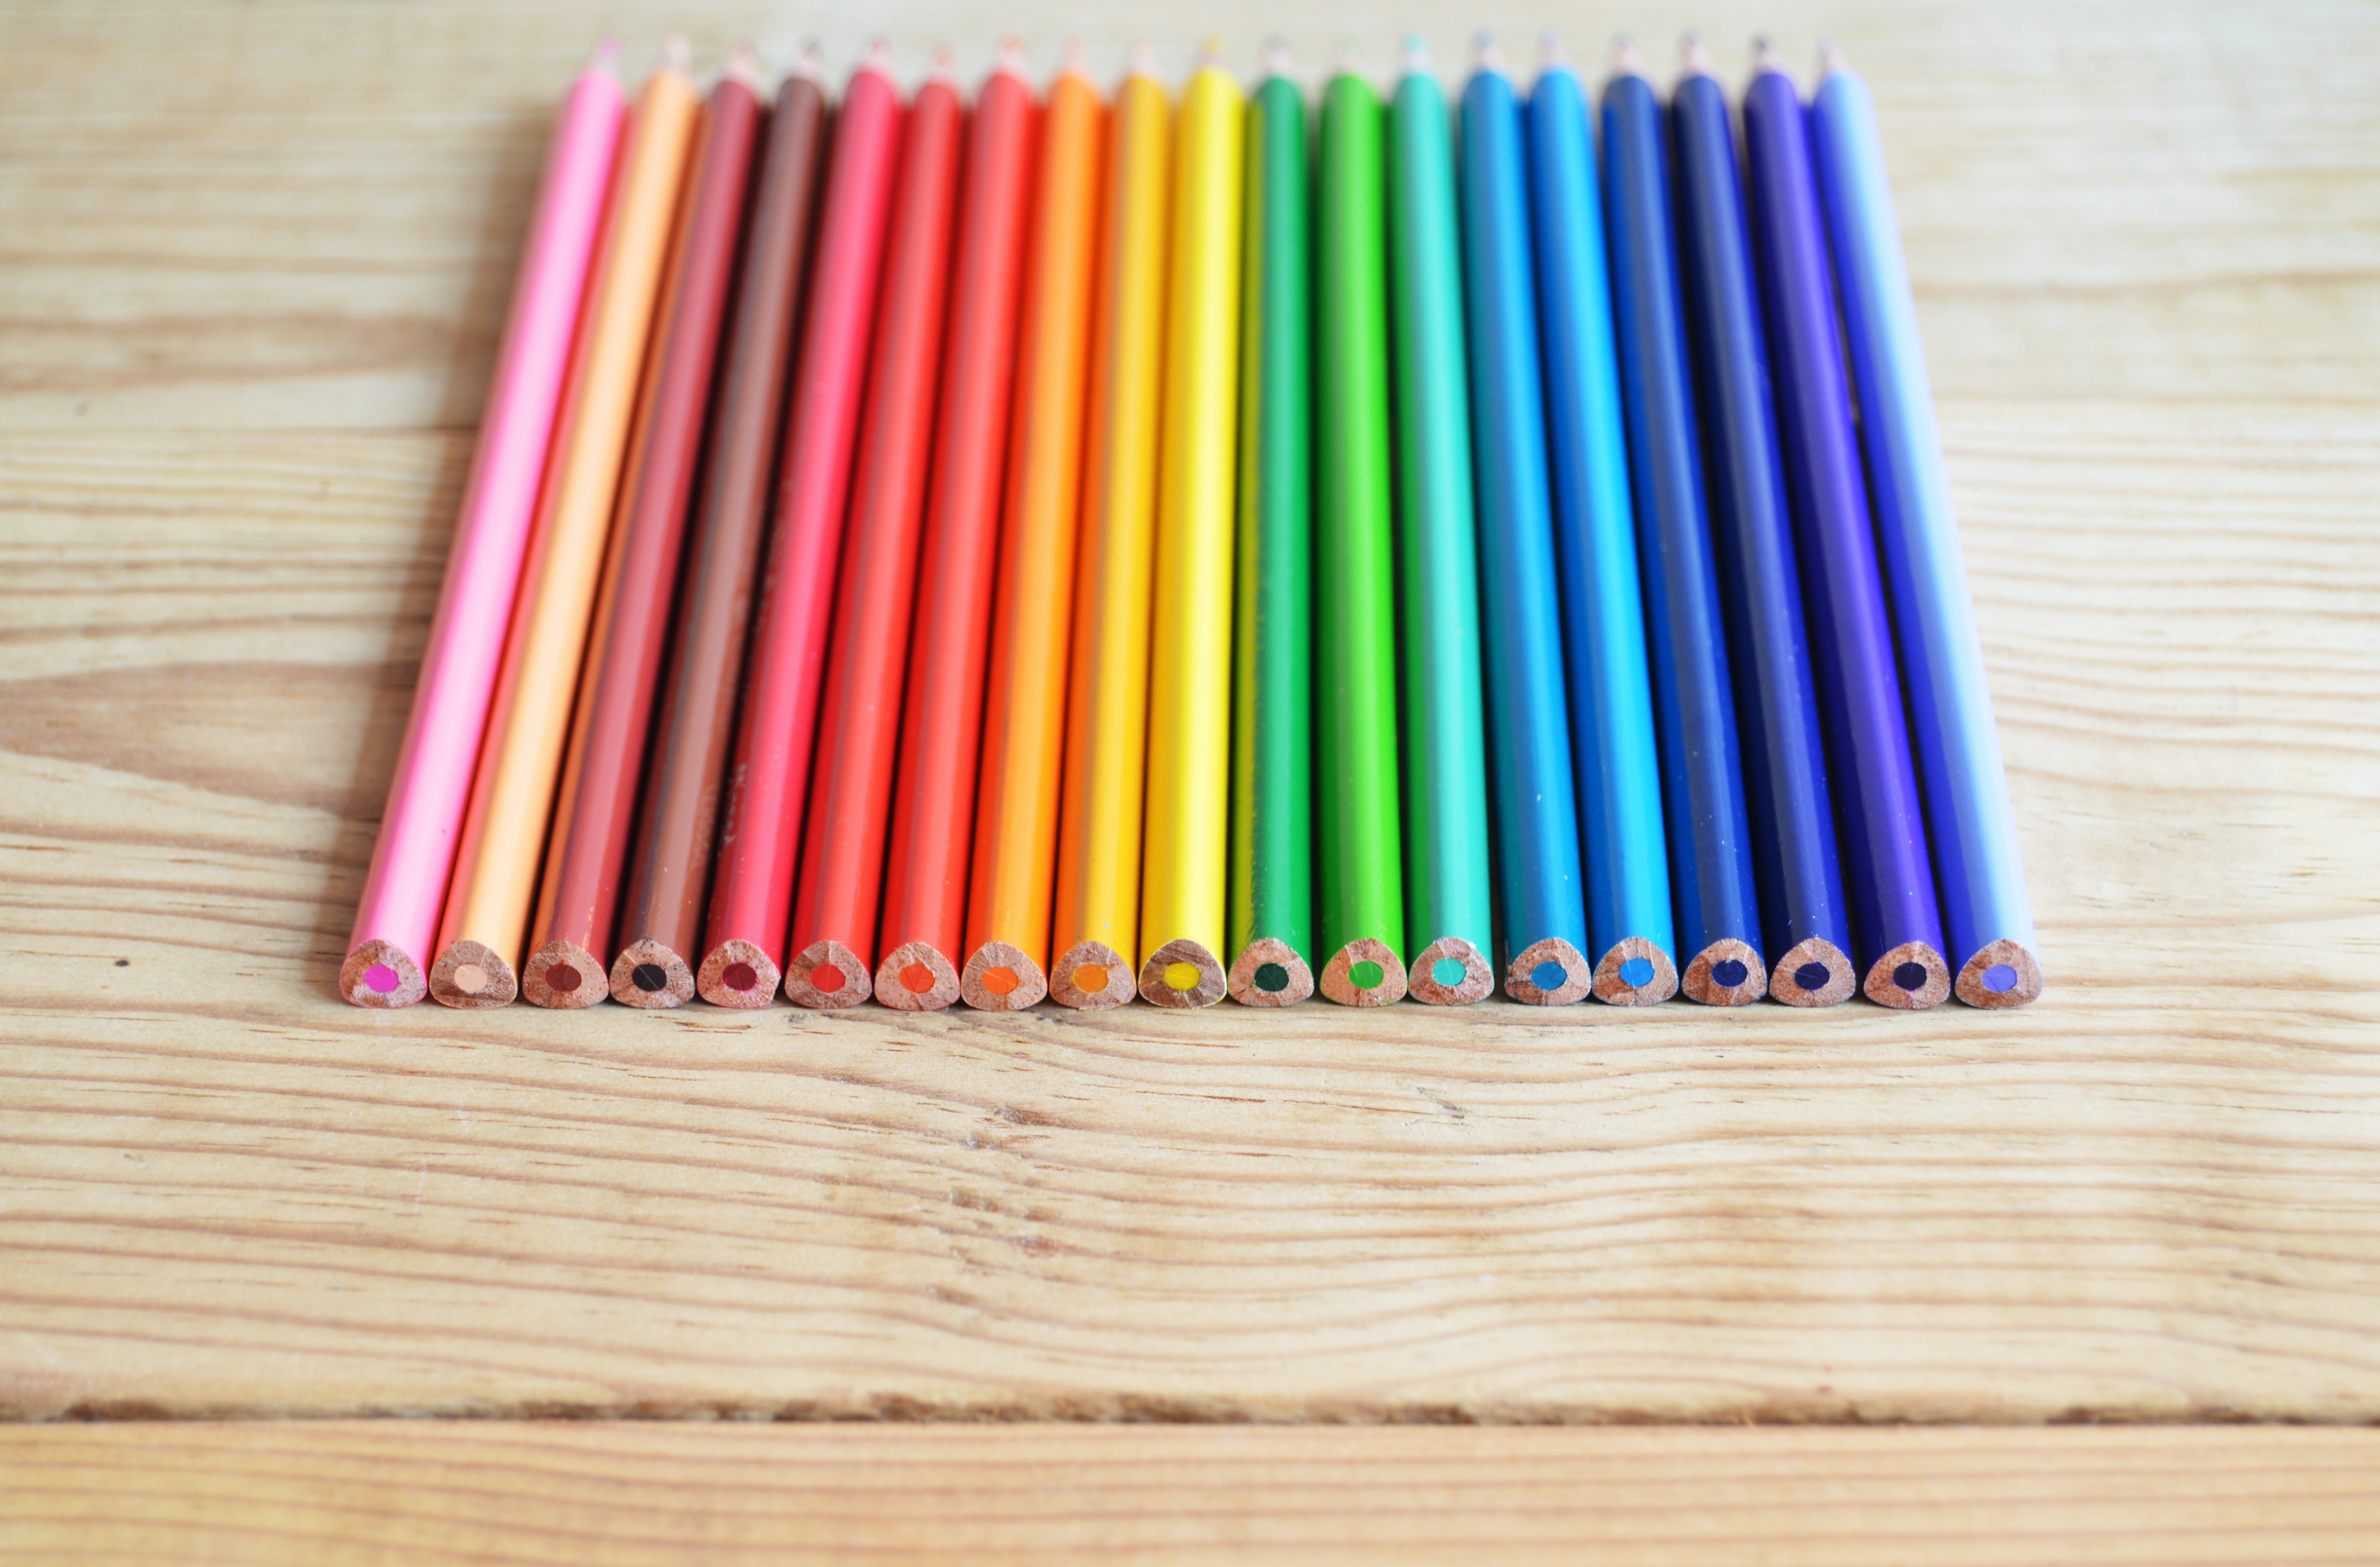 Free stock photo of pattern, pencil, colorful, colourful